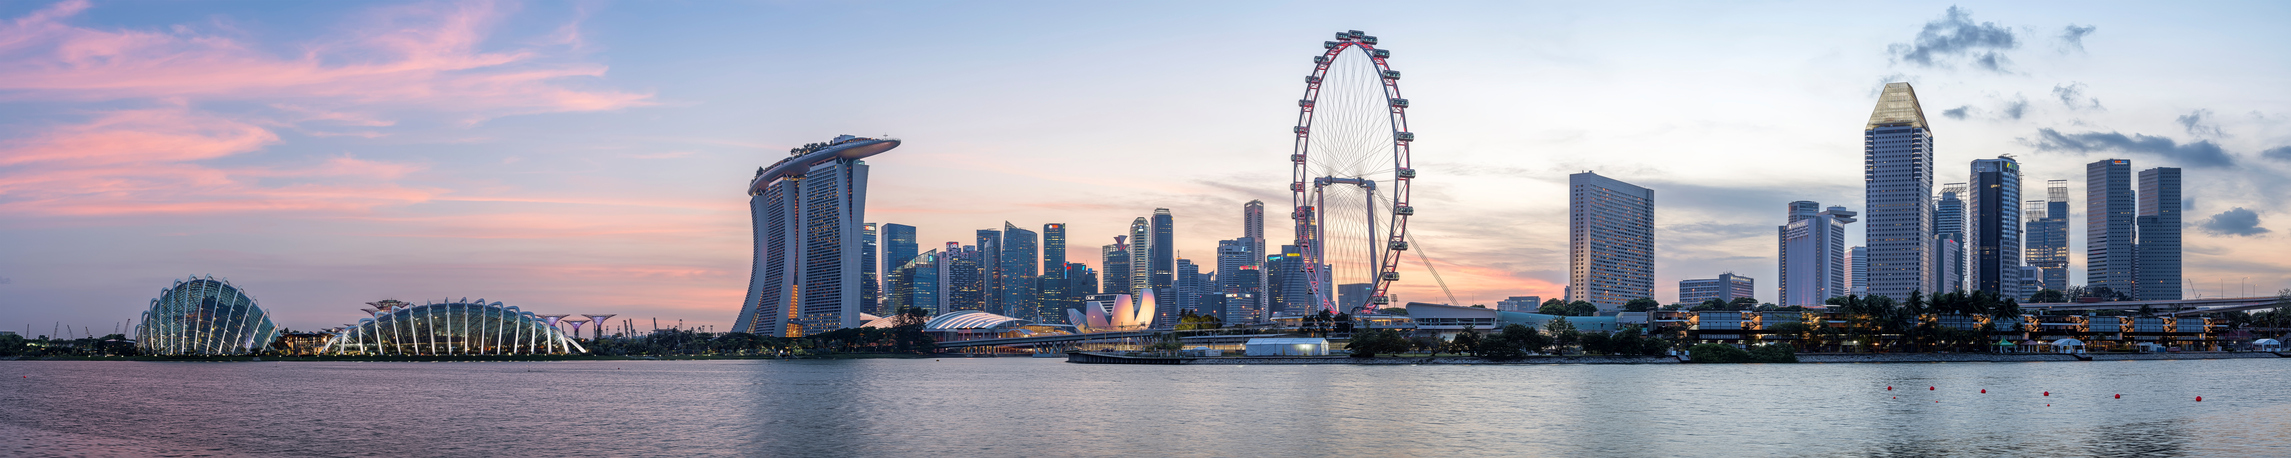 Panorama of Singapore Skyline at Sunset.